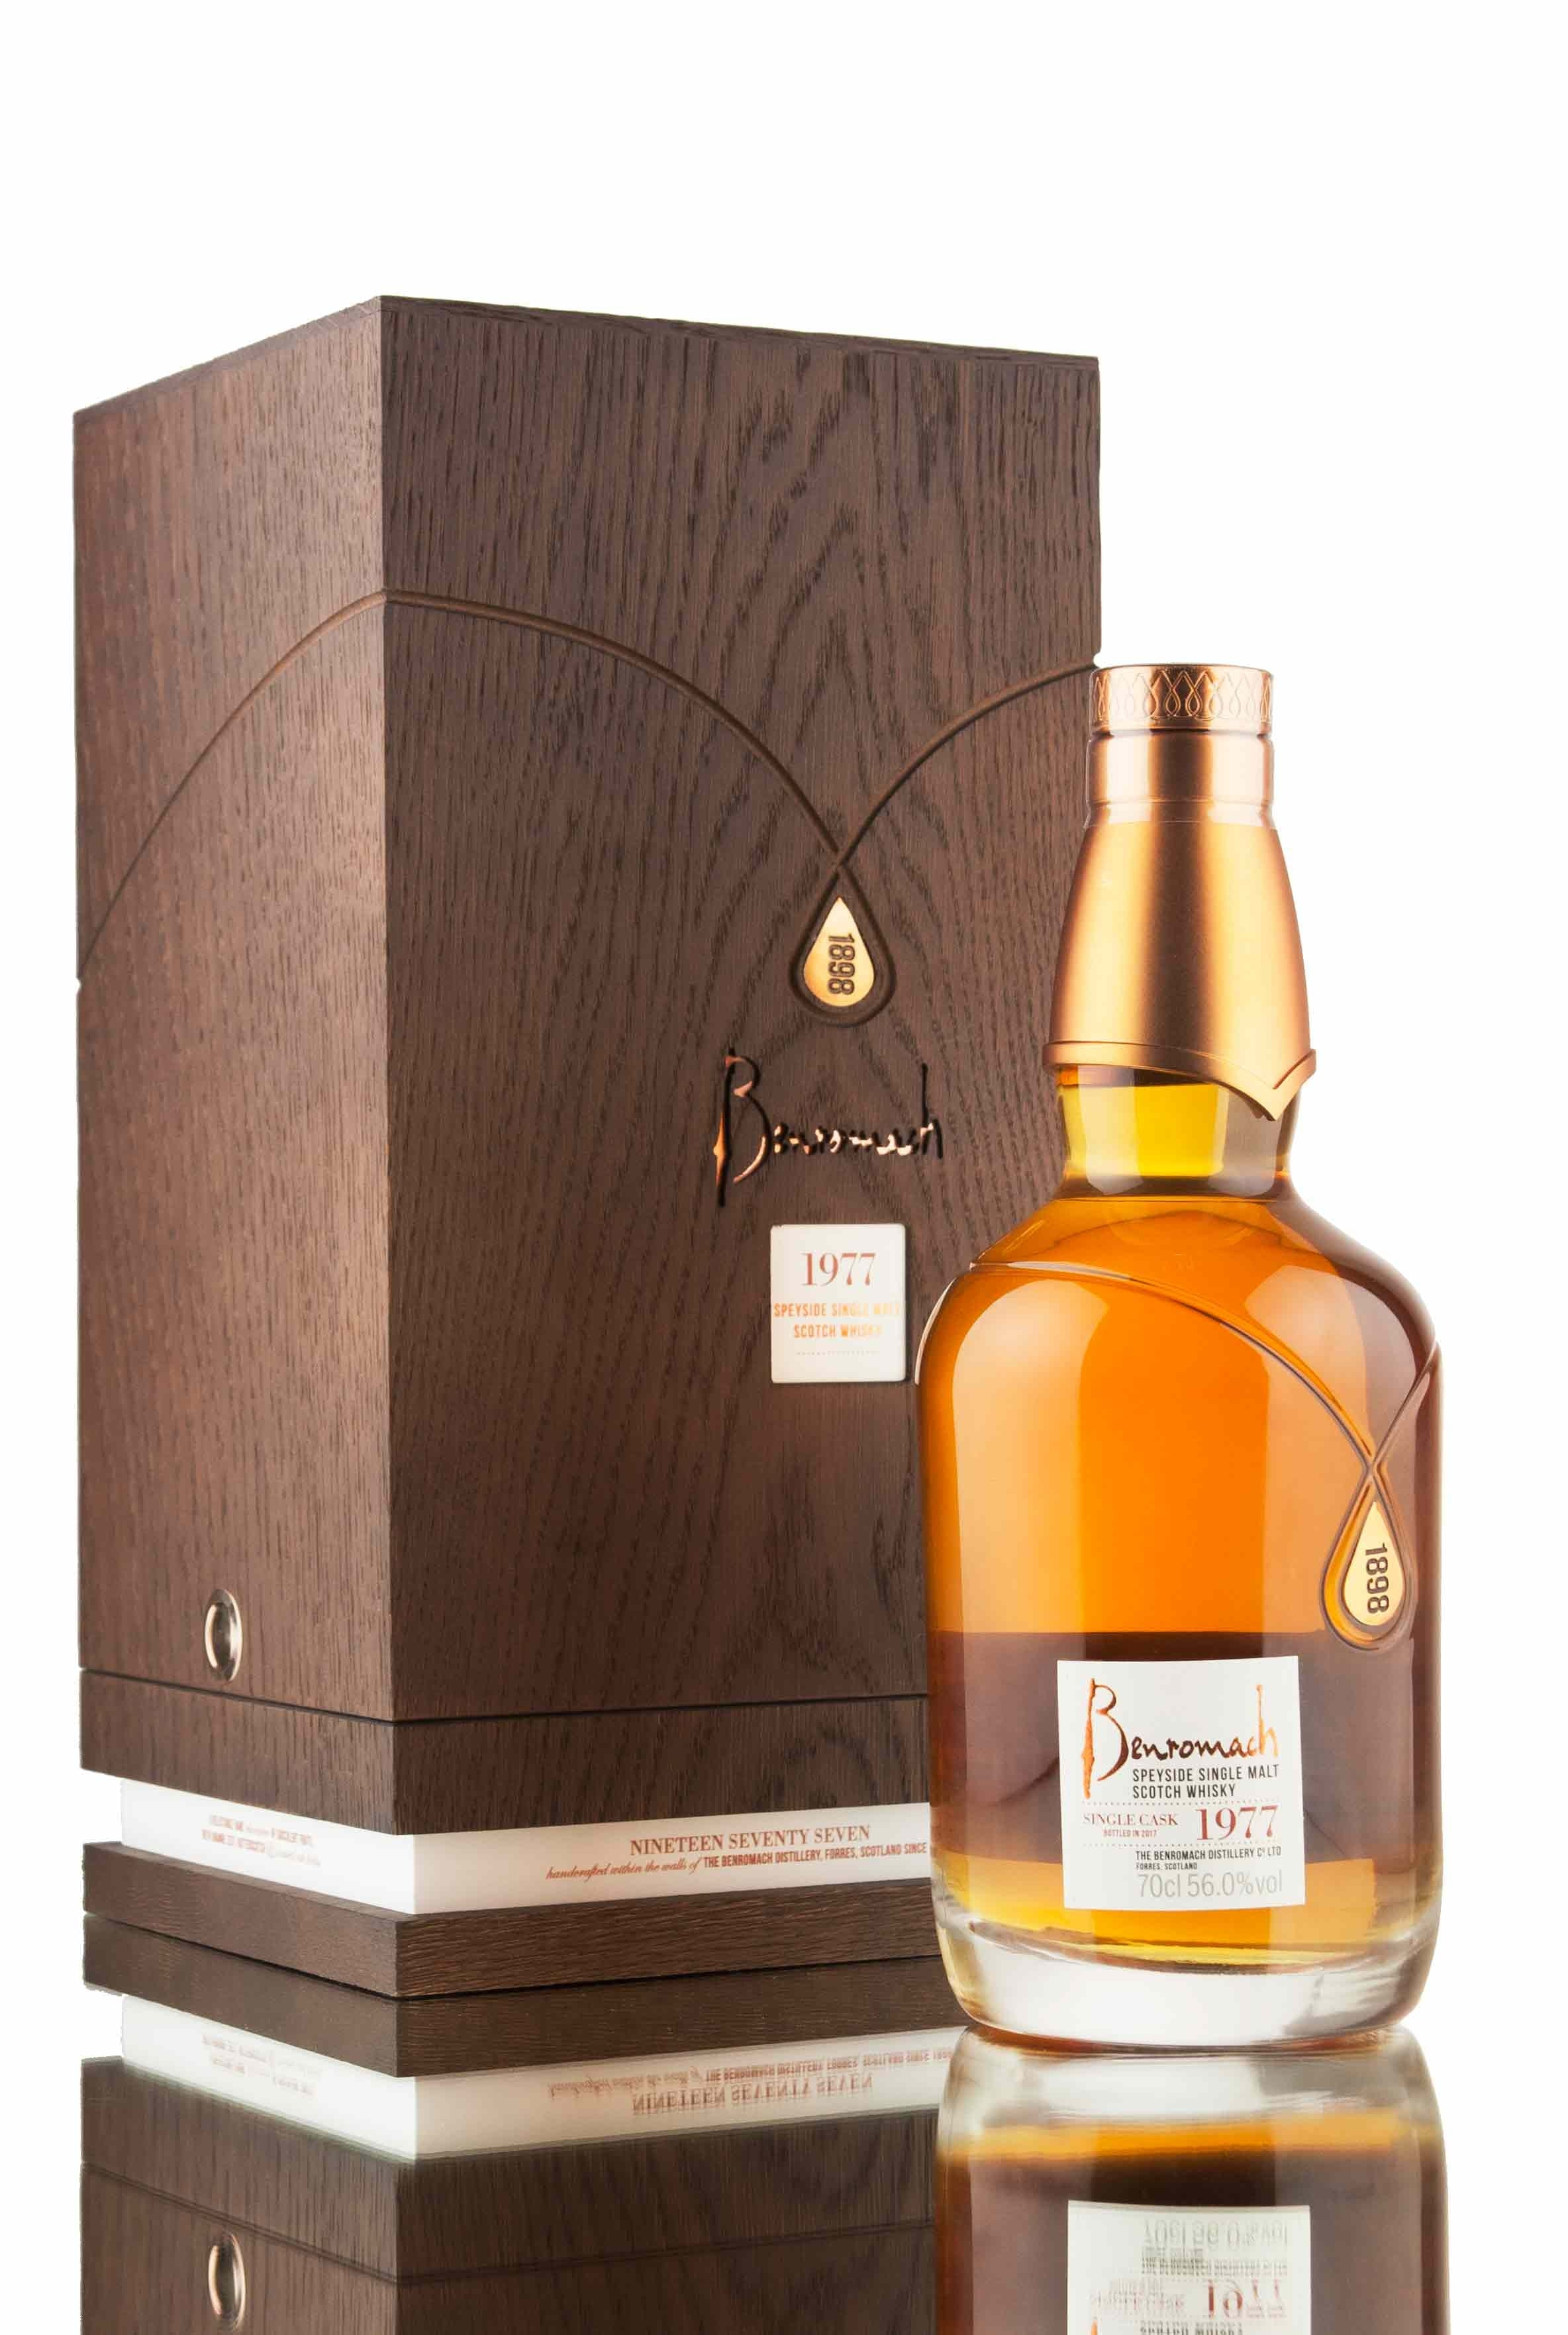 Benromach 39 Year Old - 1977 | Cask 1268